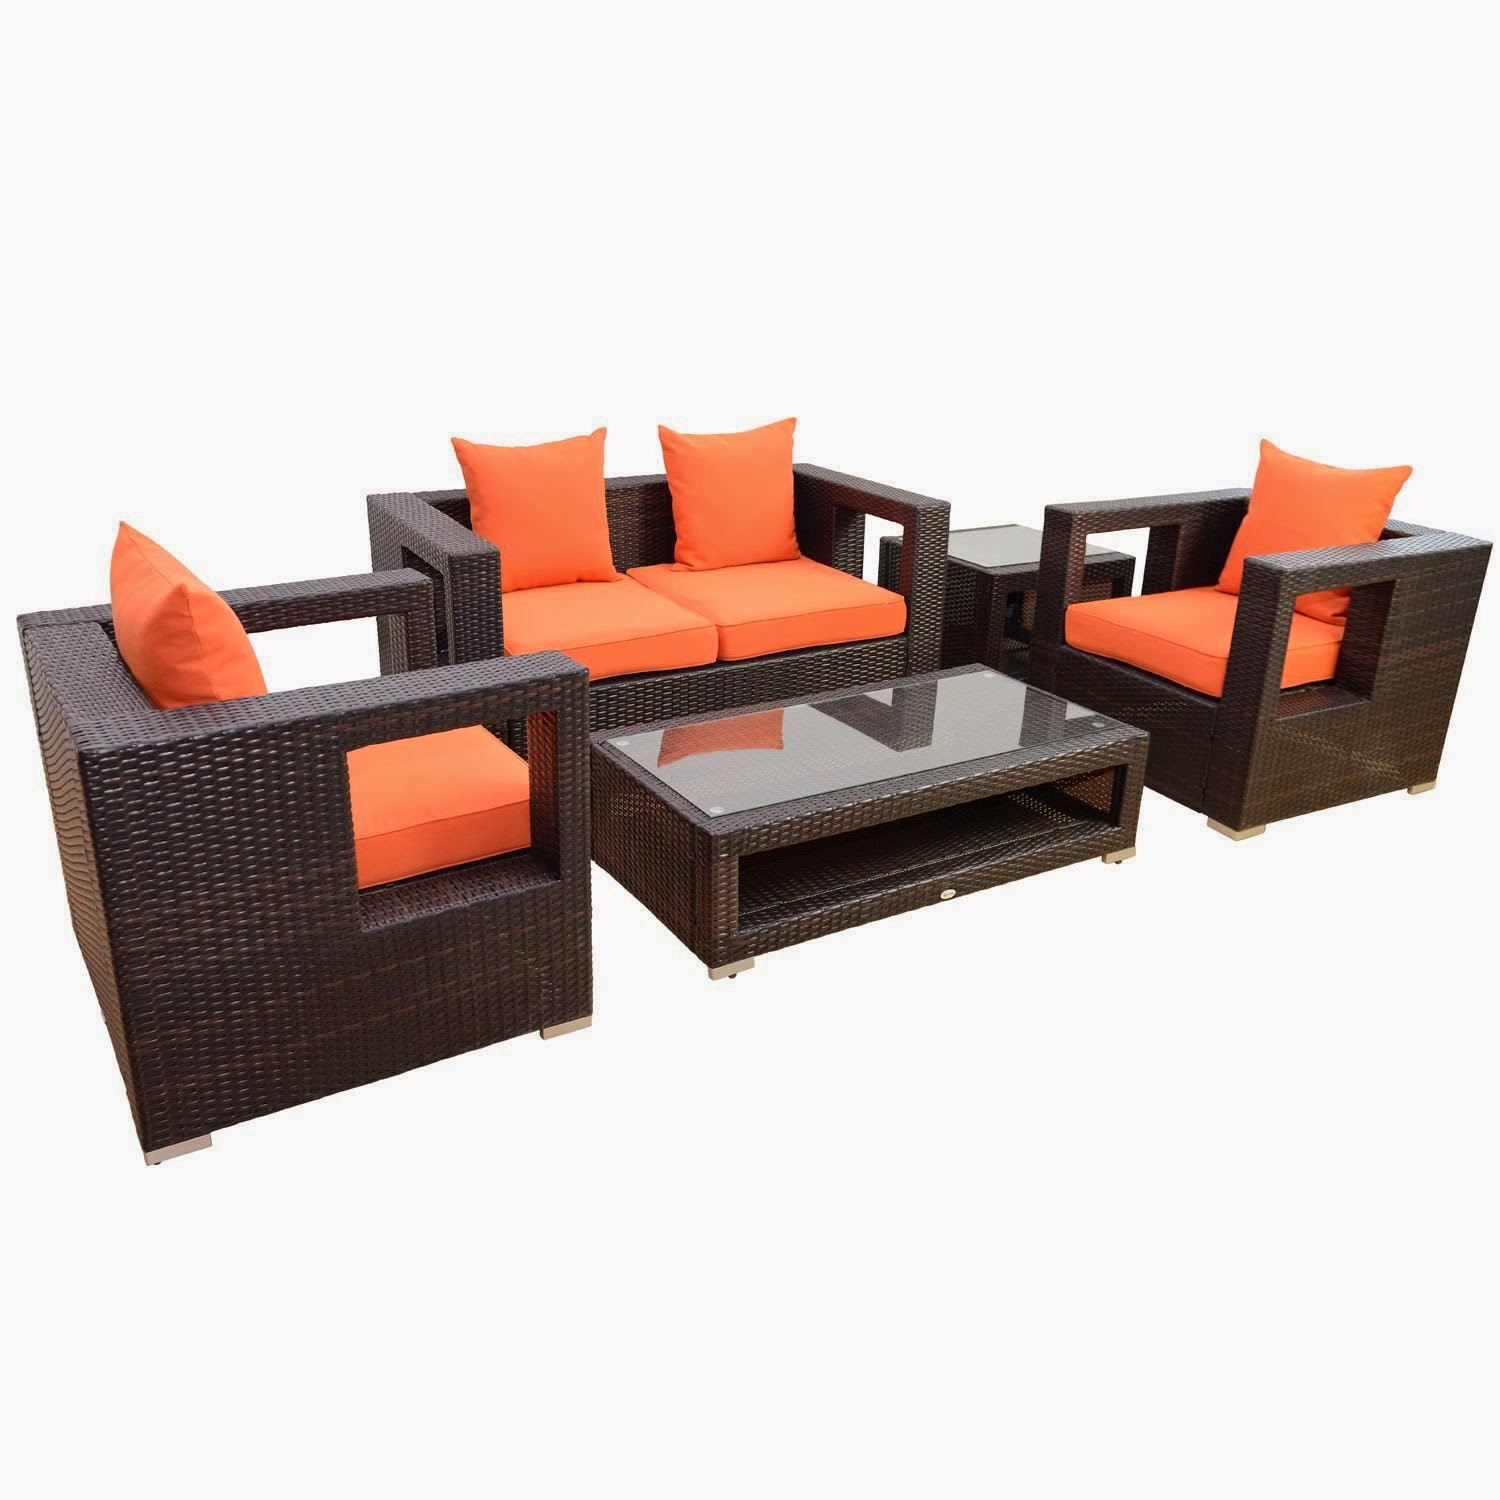 Best ideas about Outsunny Patio Furniture . Save or Pin Get Discount Outsunny 5pc Outdoor PE Rattan Wicker Now.